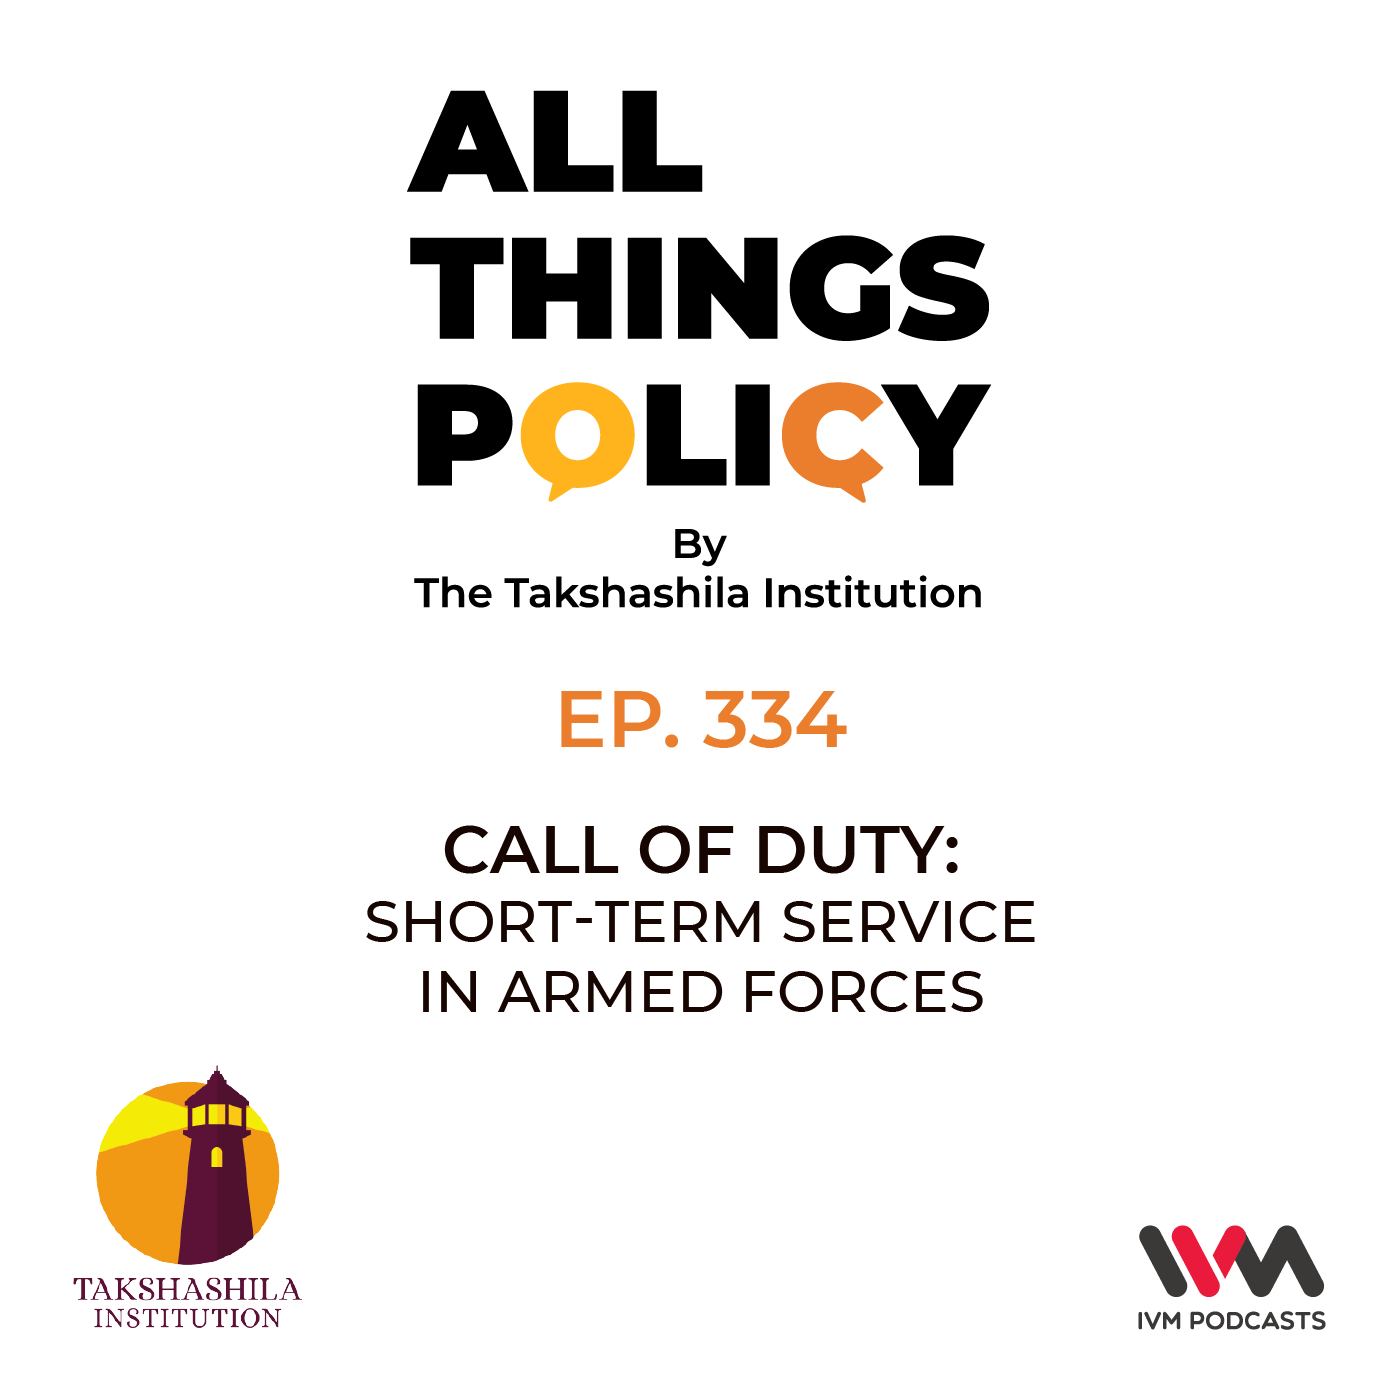 Ep. 334: Call of Duty: Short-term service in armed forces